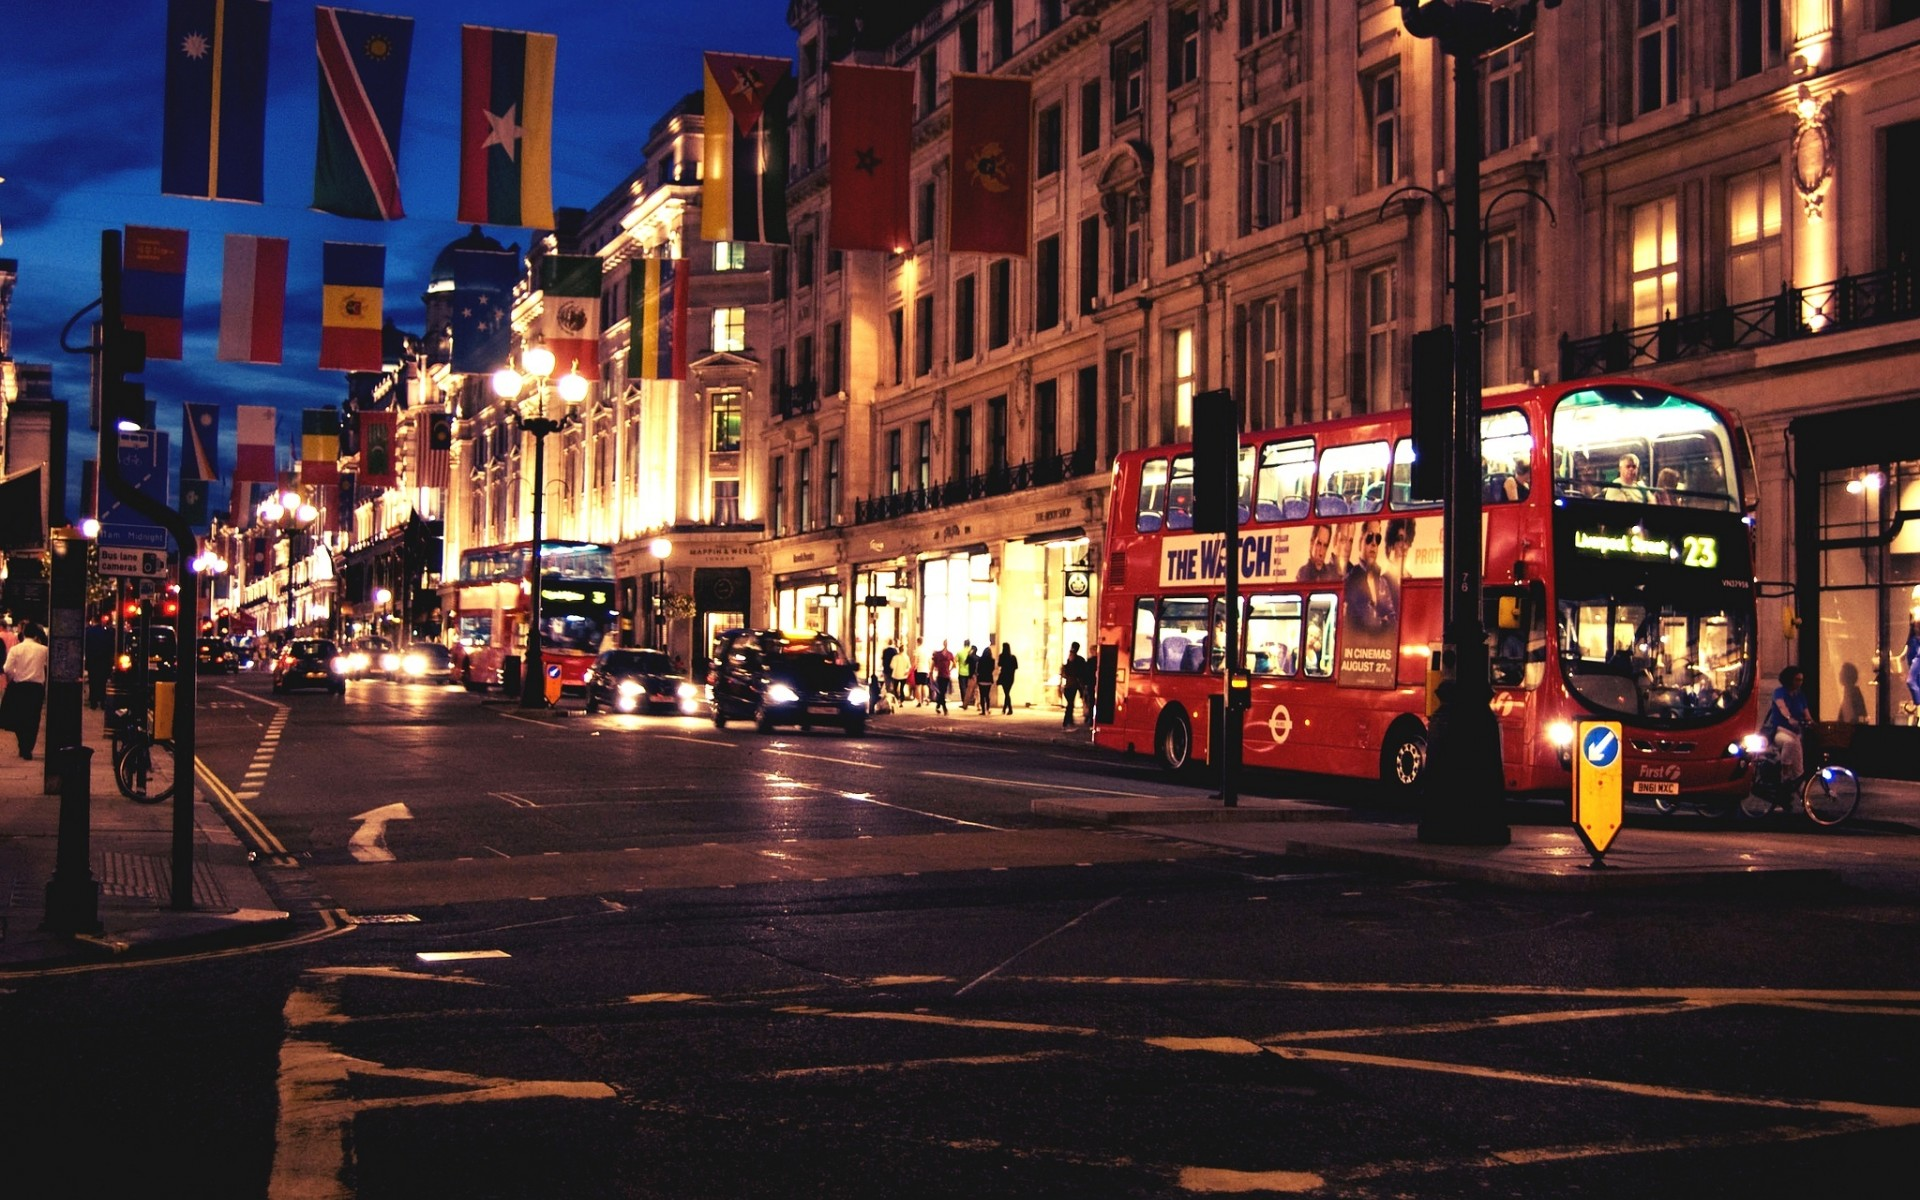 London England Great Britain cities architecture buildings roads bus 1920x1200